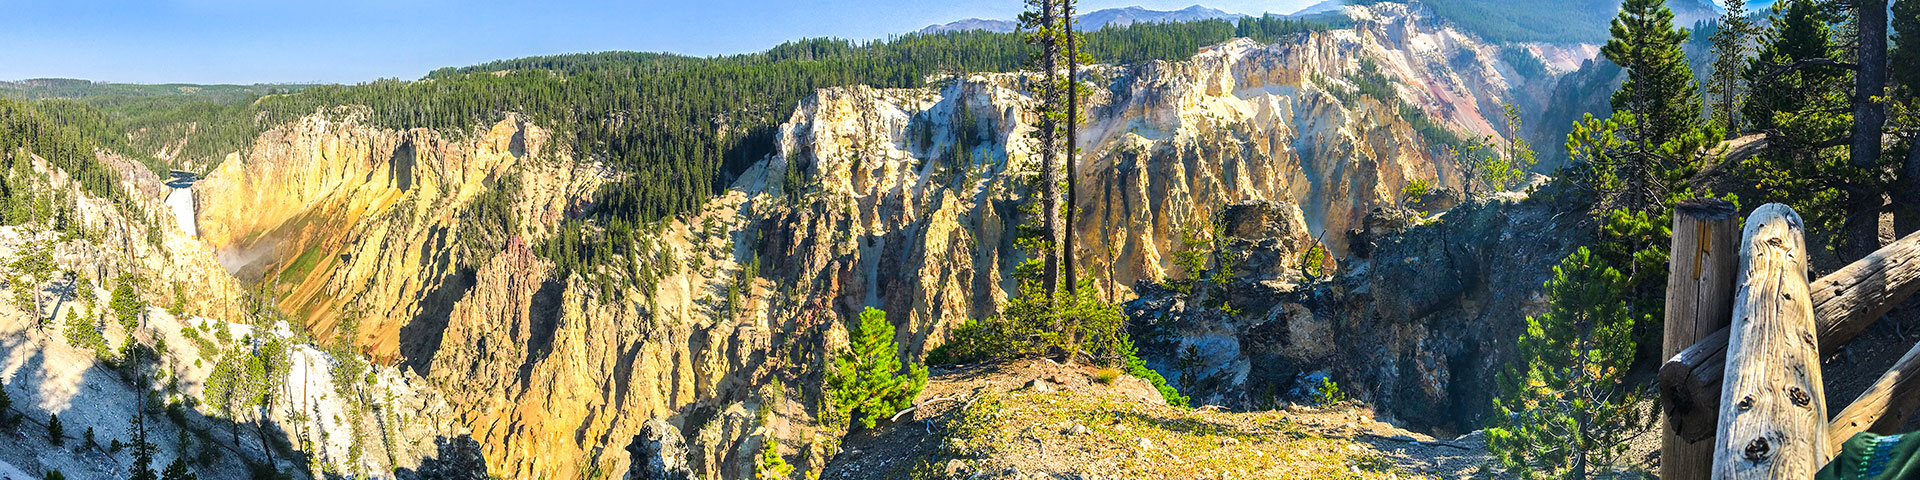 Best hikes in Wyoming